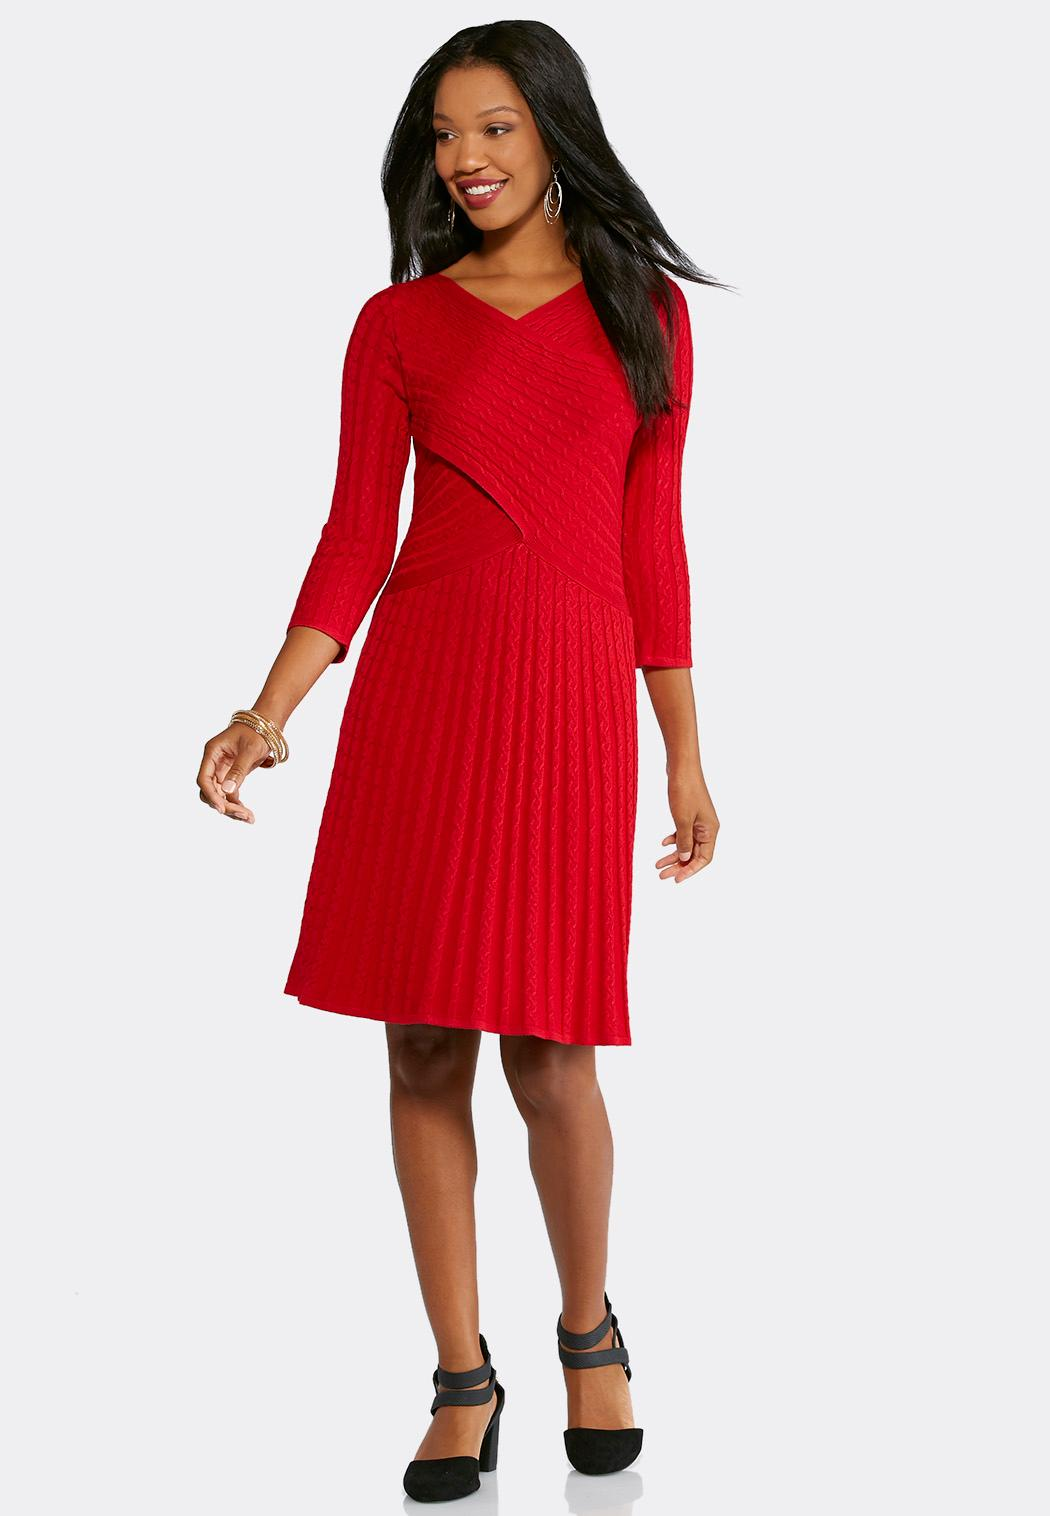 Cato fashions careers - Color